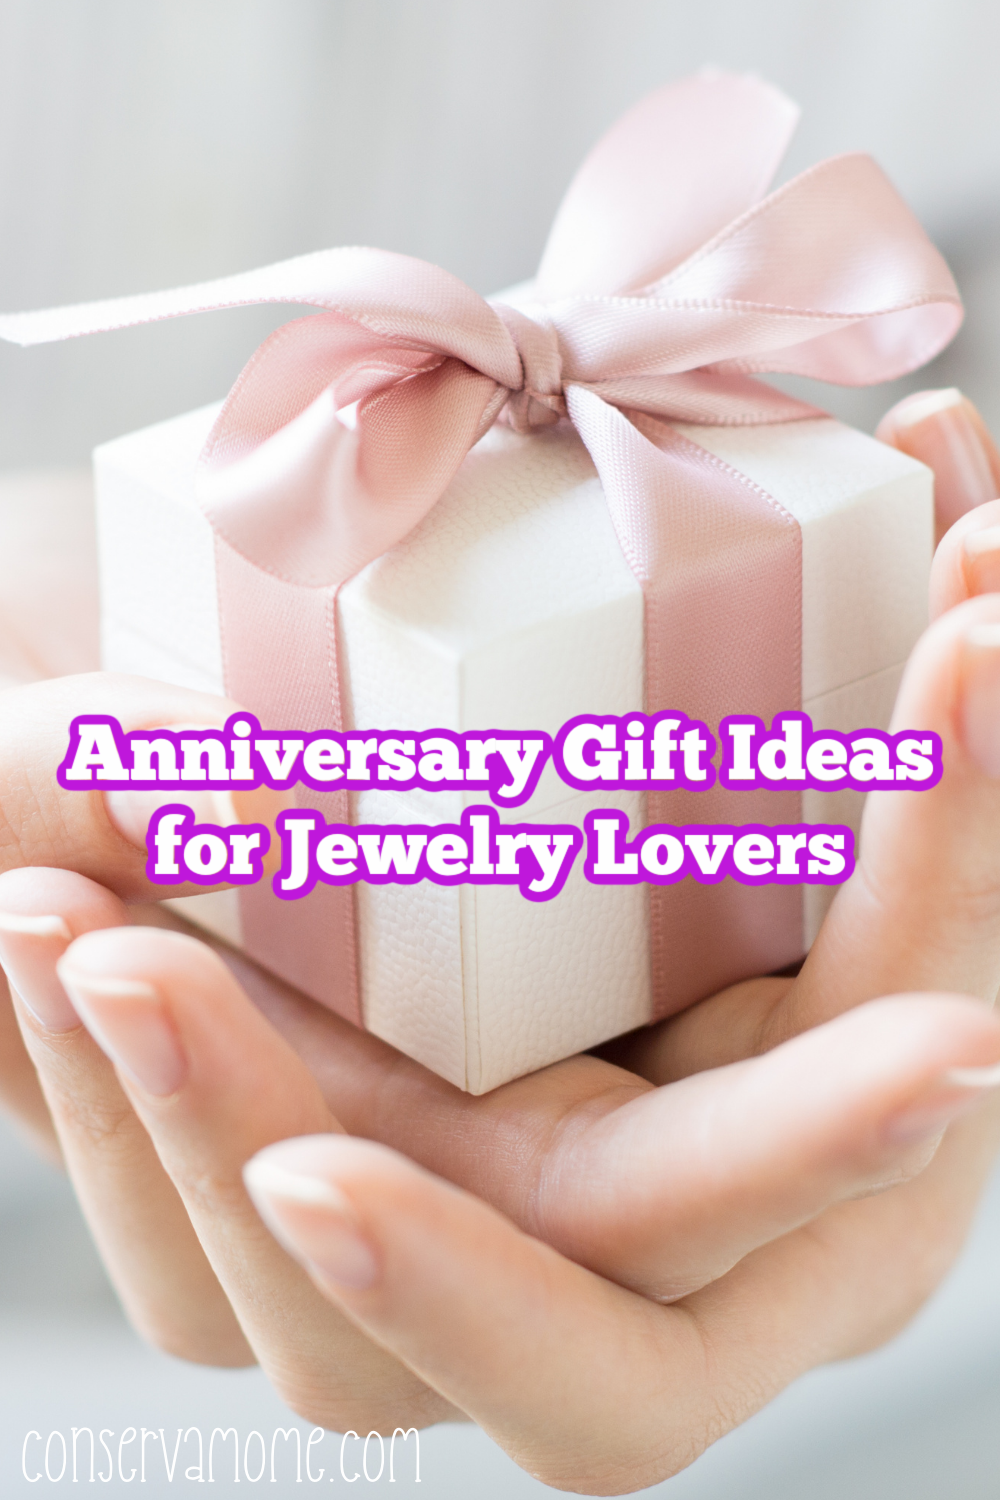 Anniversary Gift Ideas for Jewelry Lovers